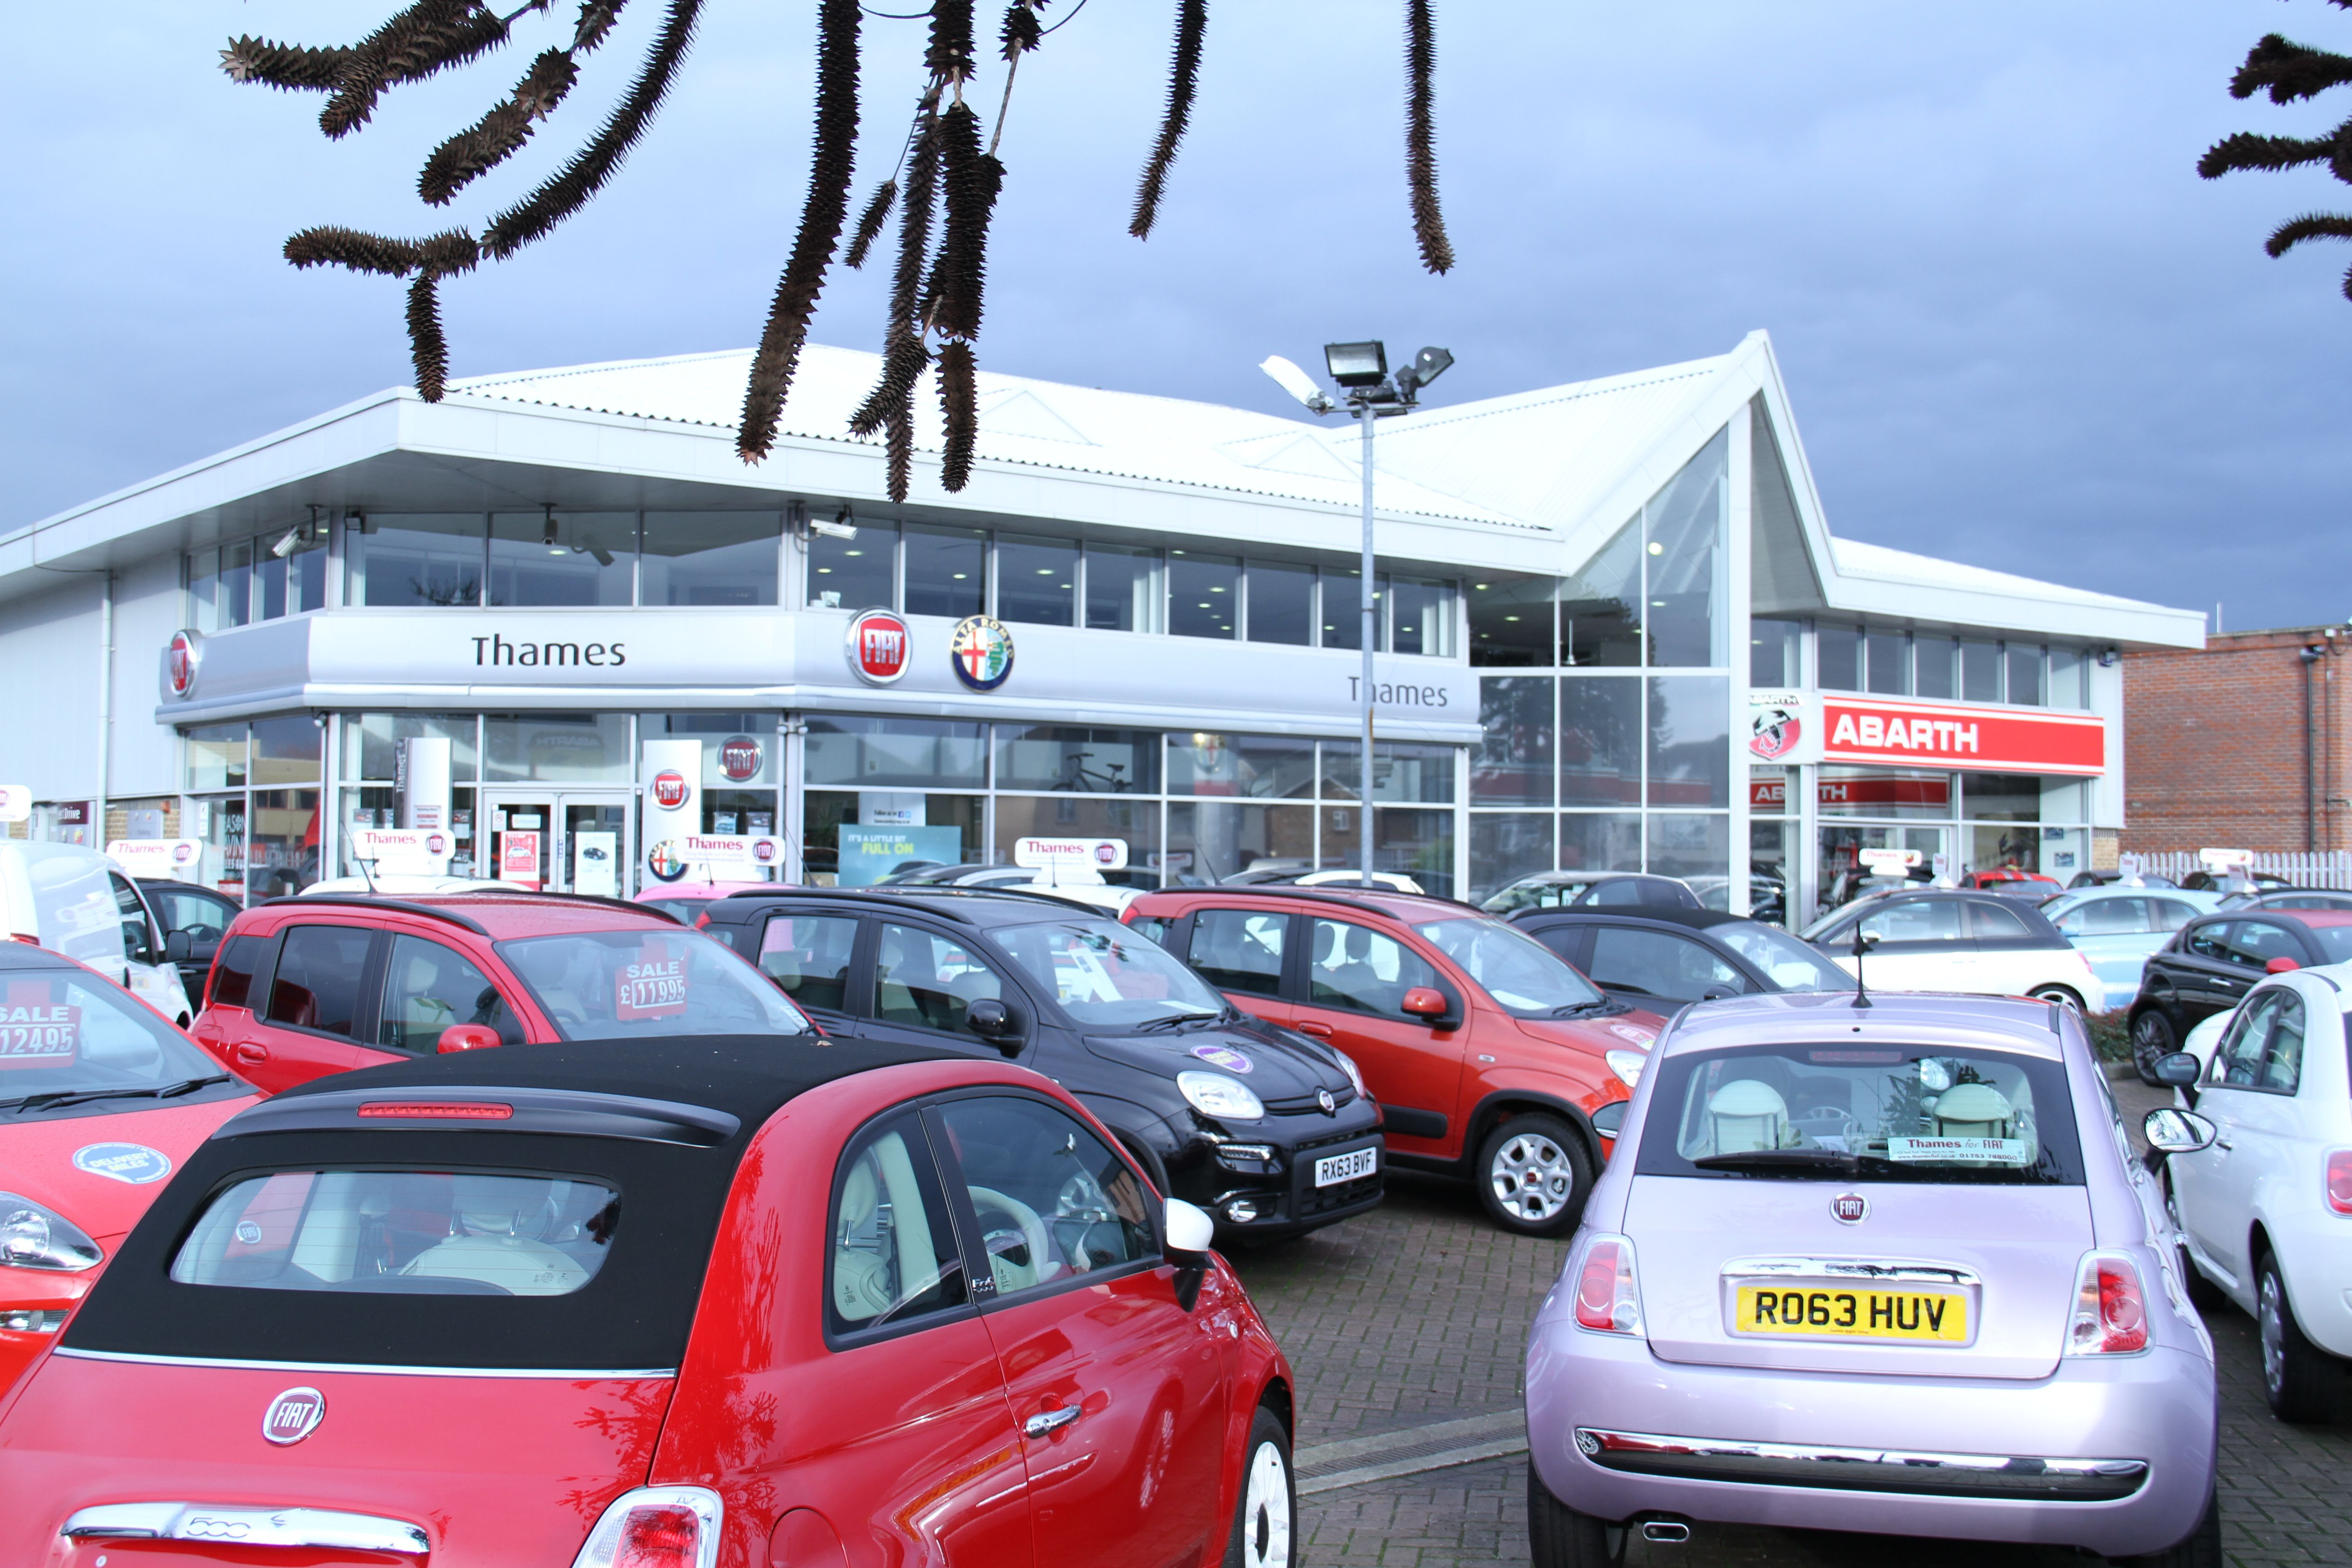 Abarth showroom in Slough | Thames Abarth in Slough | Pinterest